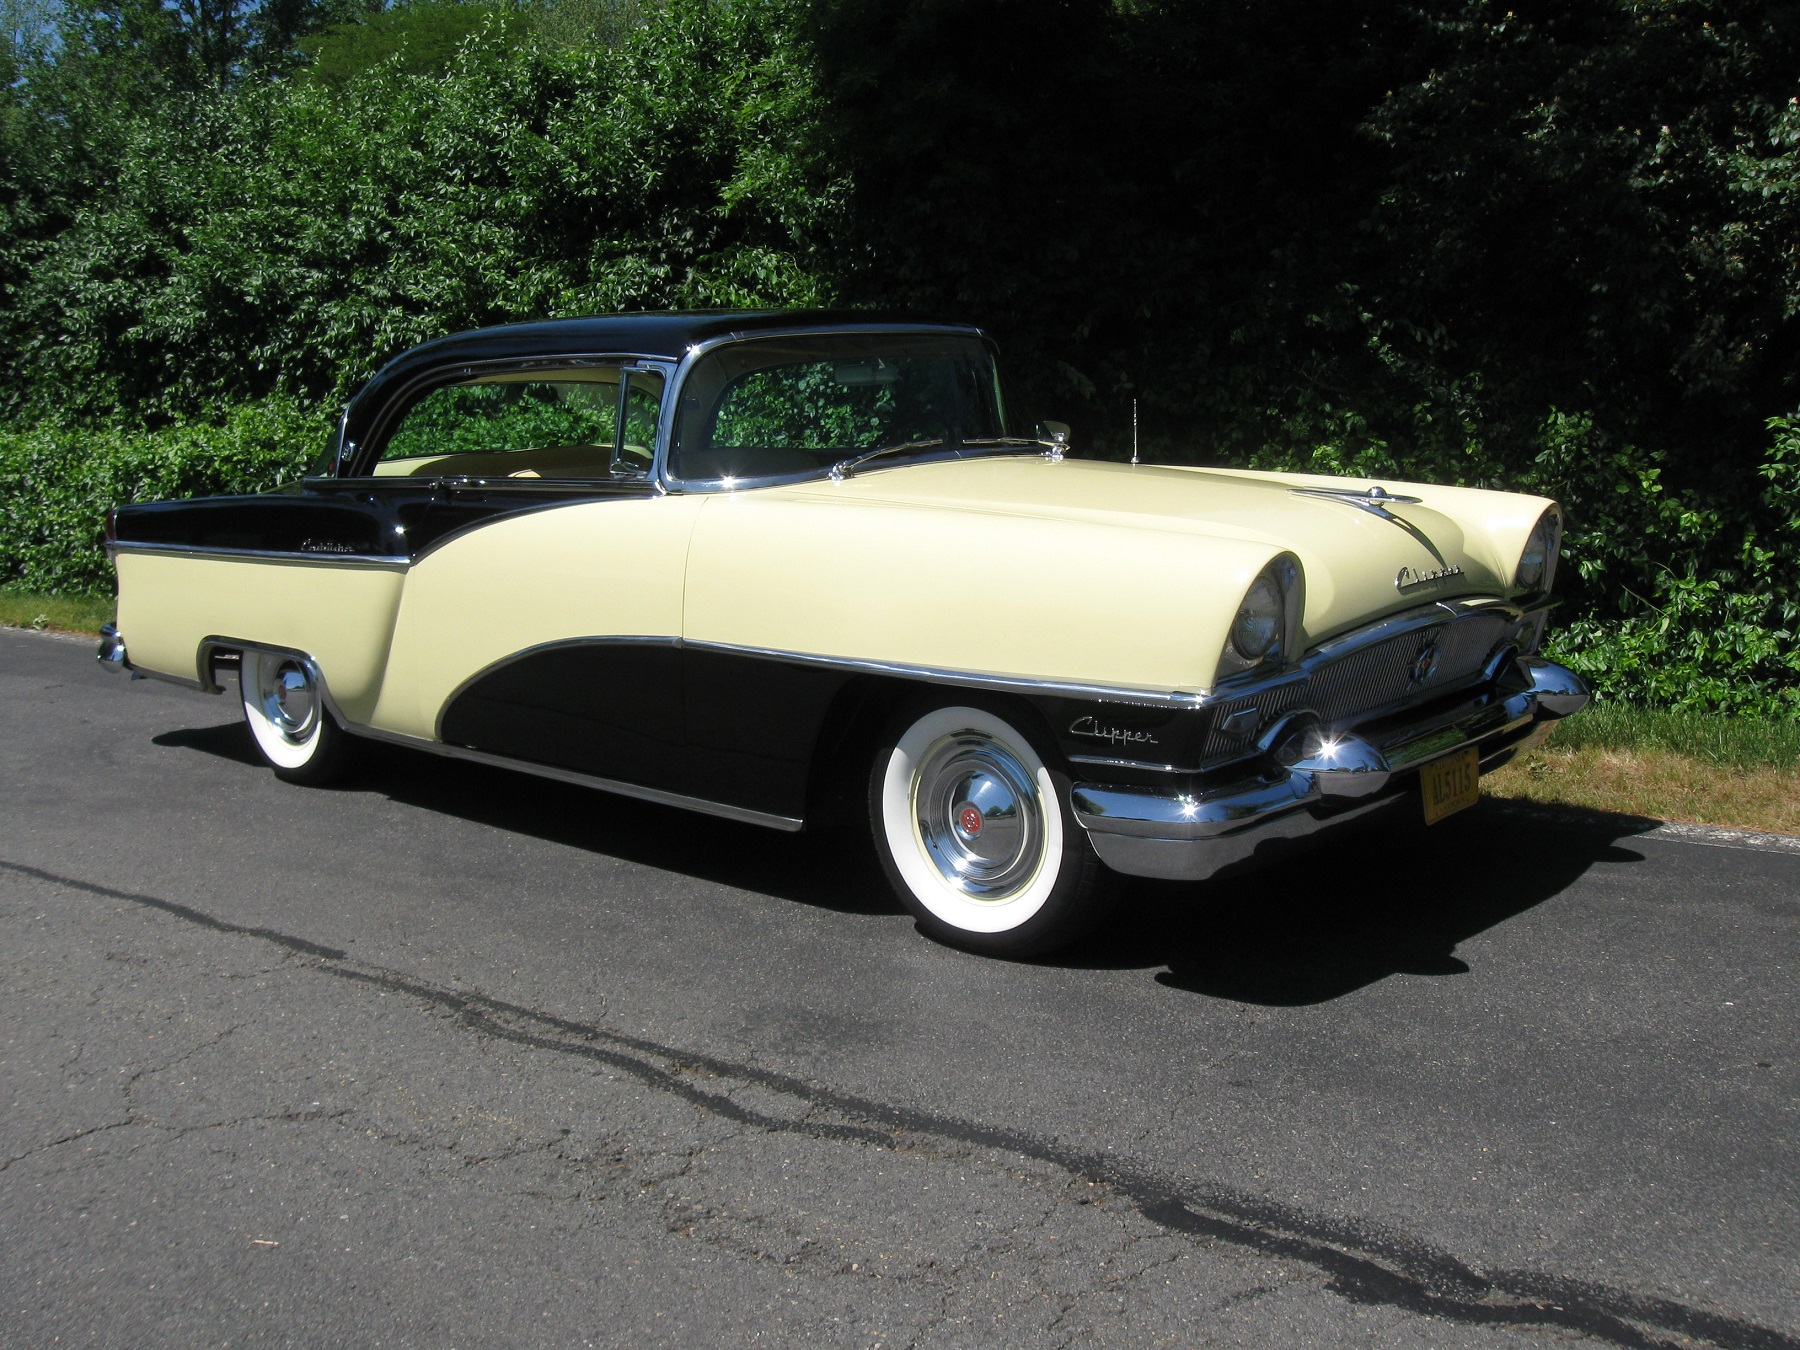 1955 Constellation: Top of the Packard Clippers - Classic Classics ...